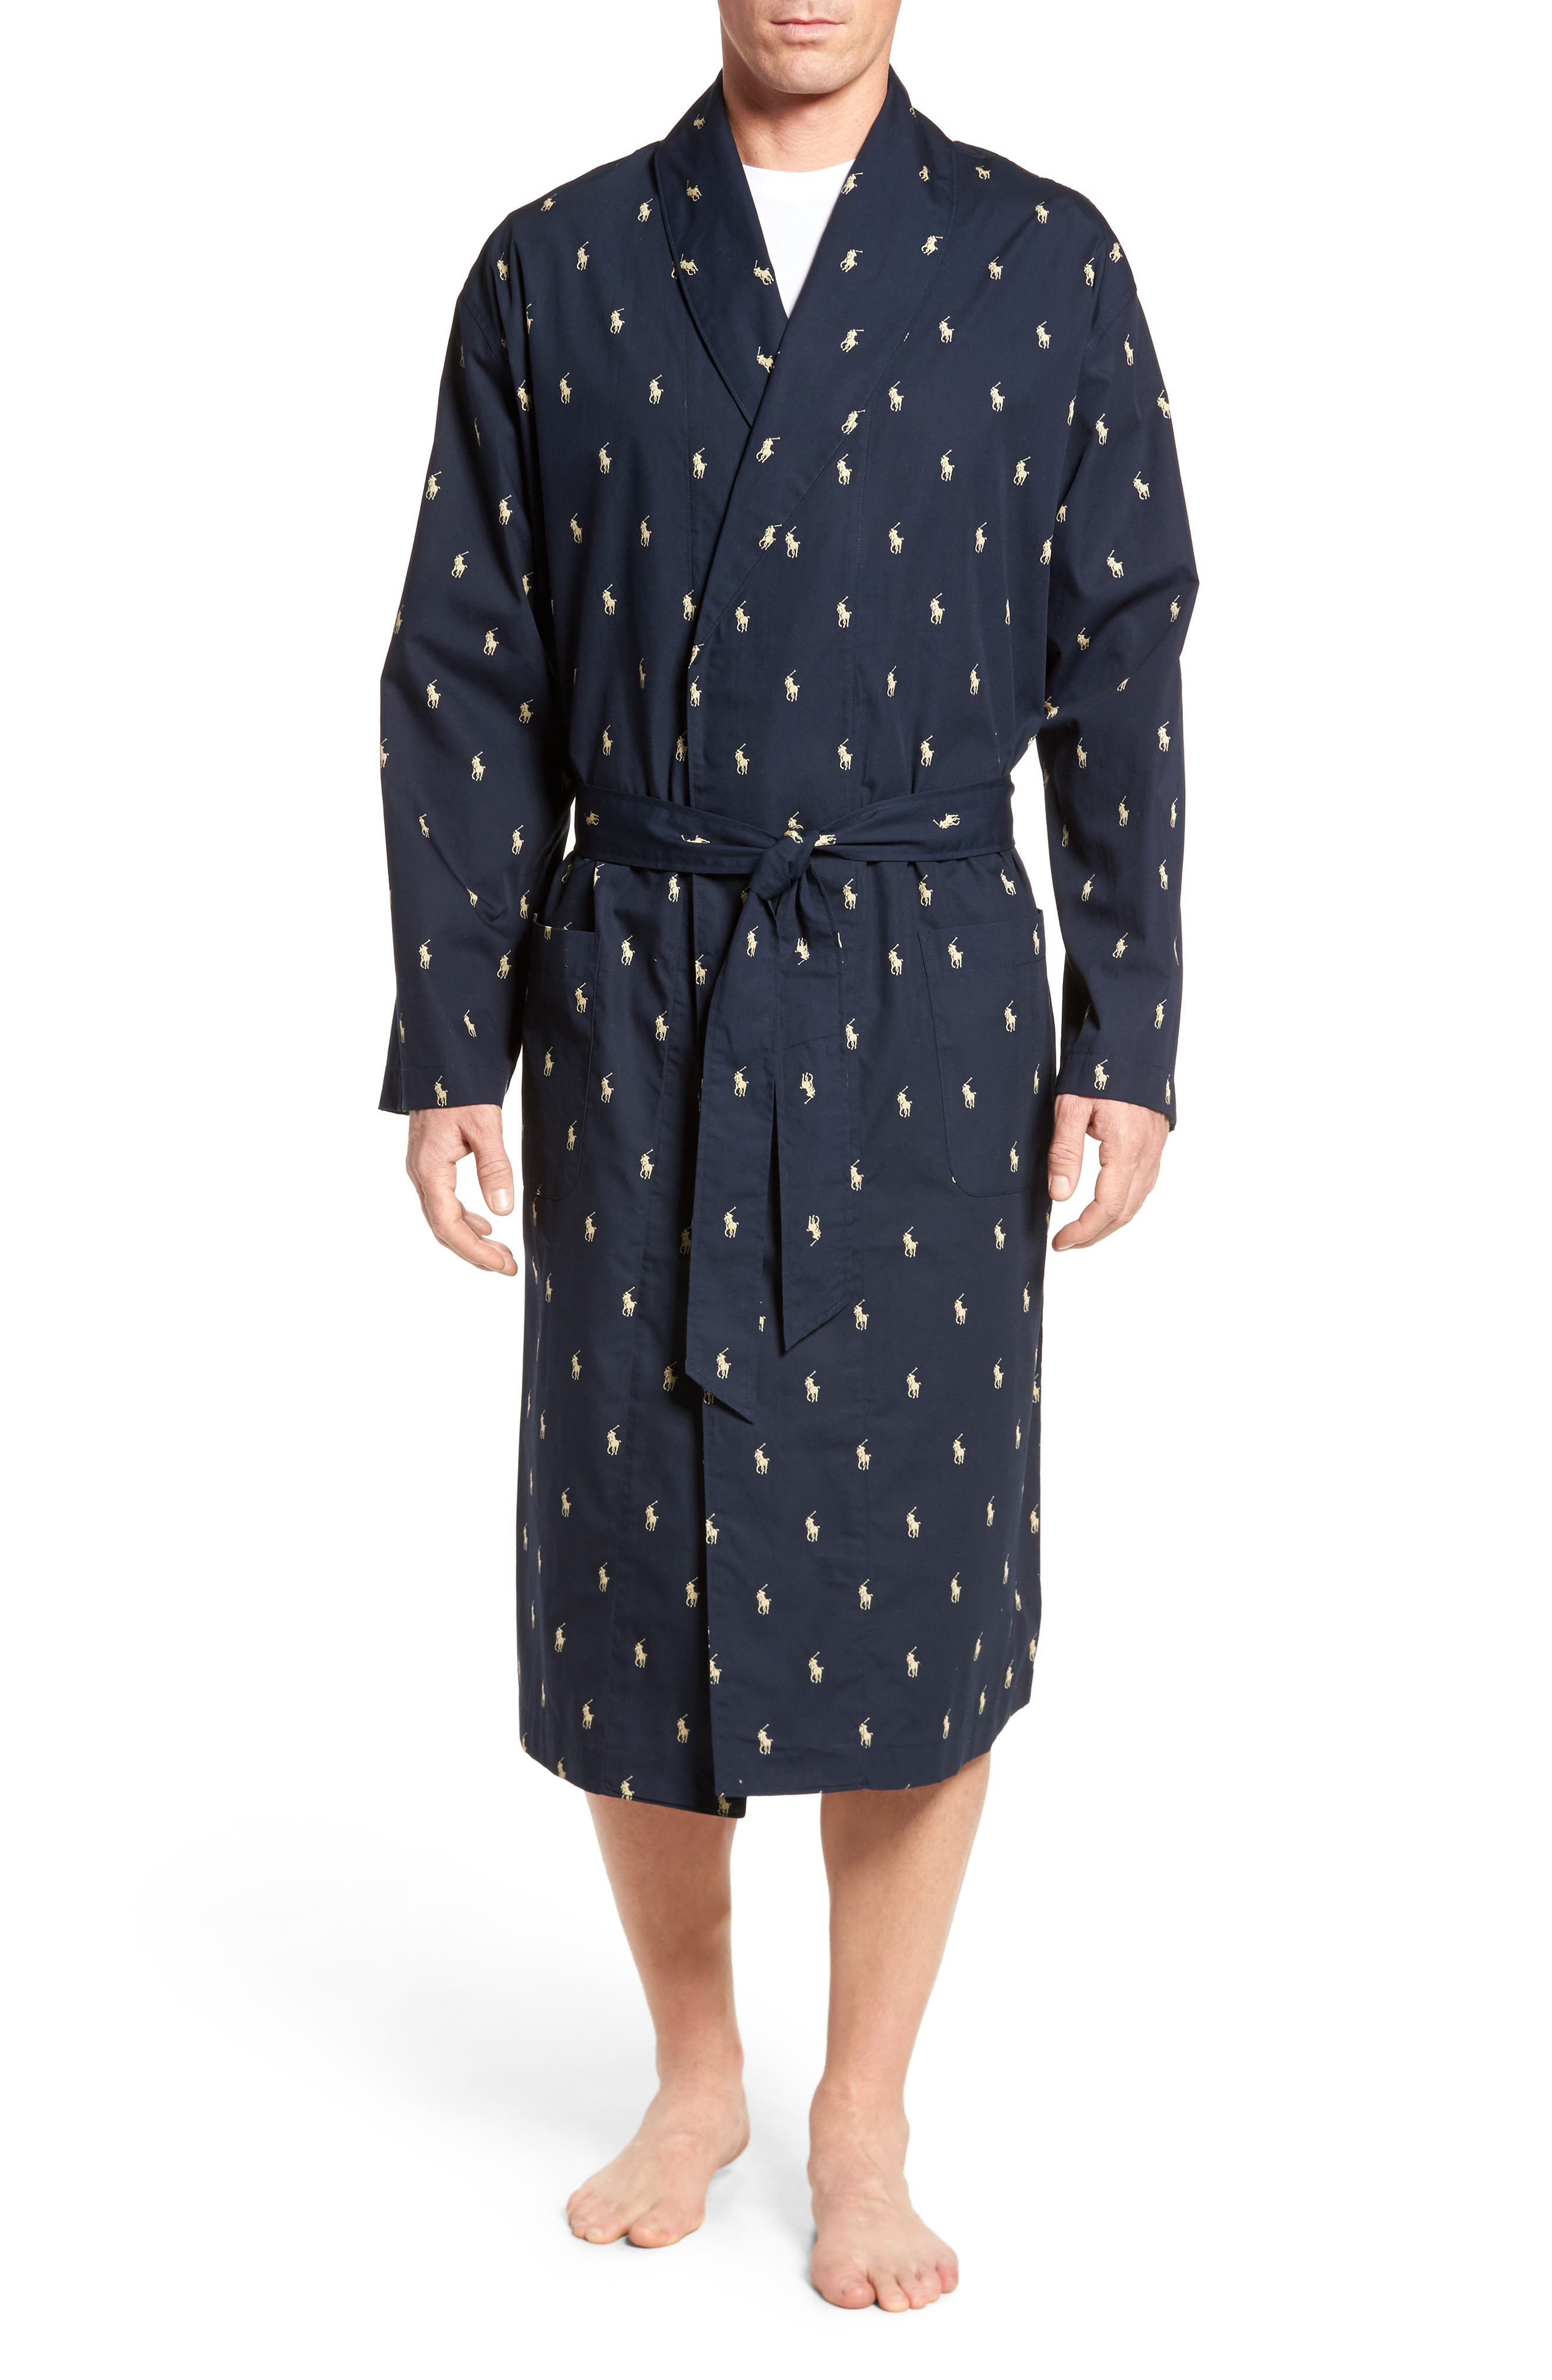 POLO RALPH LAUREN 'Polo Player' Cotton Robe, Main, color, 410